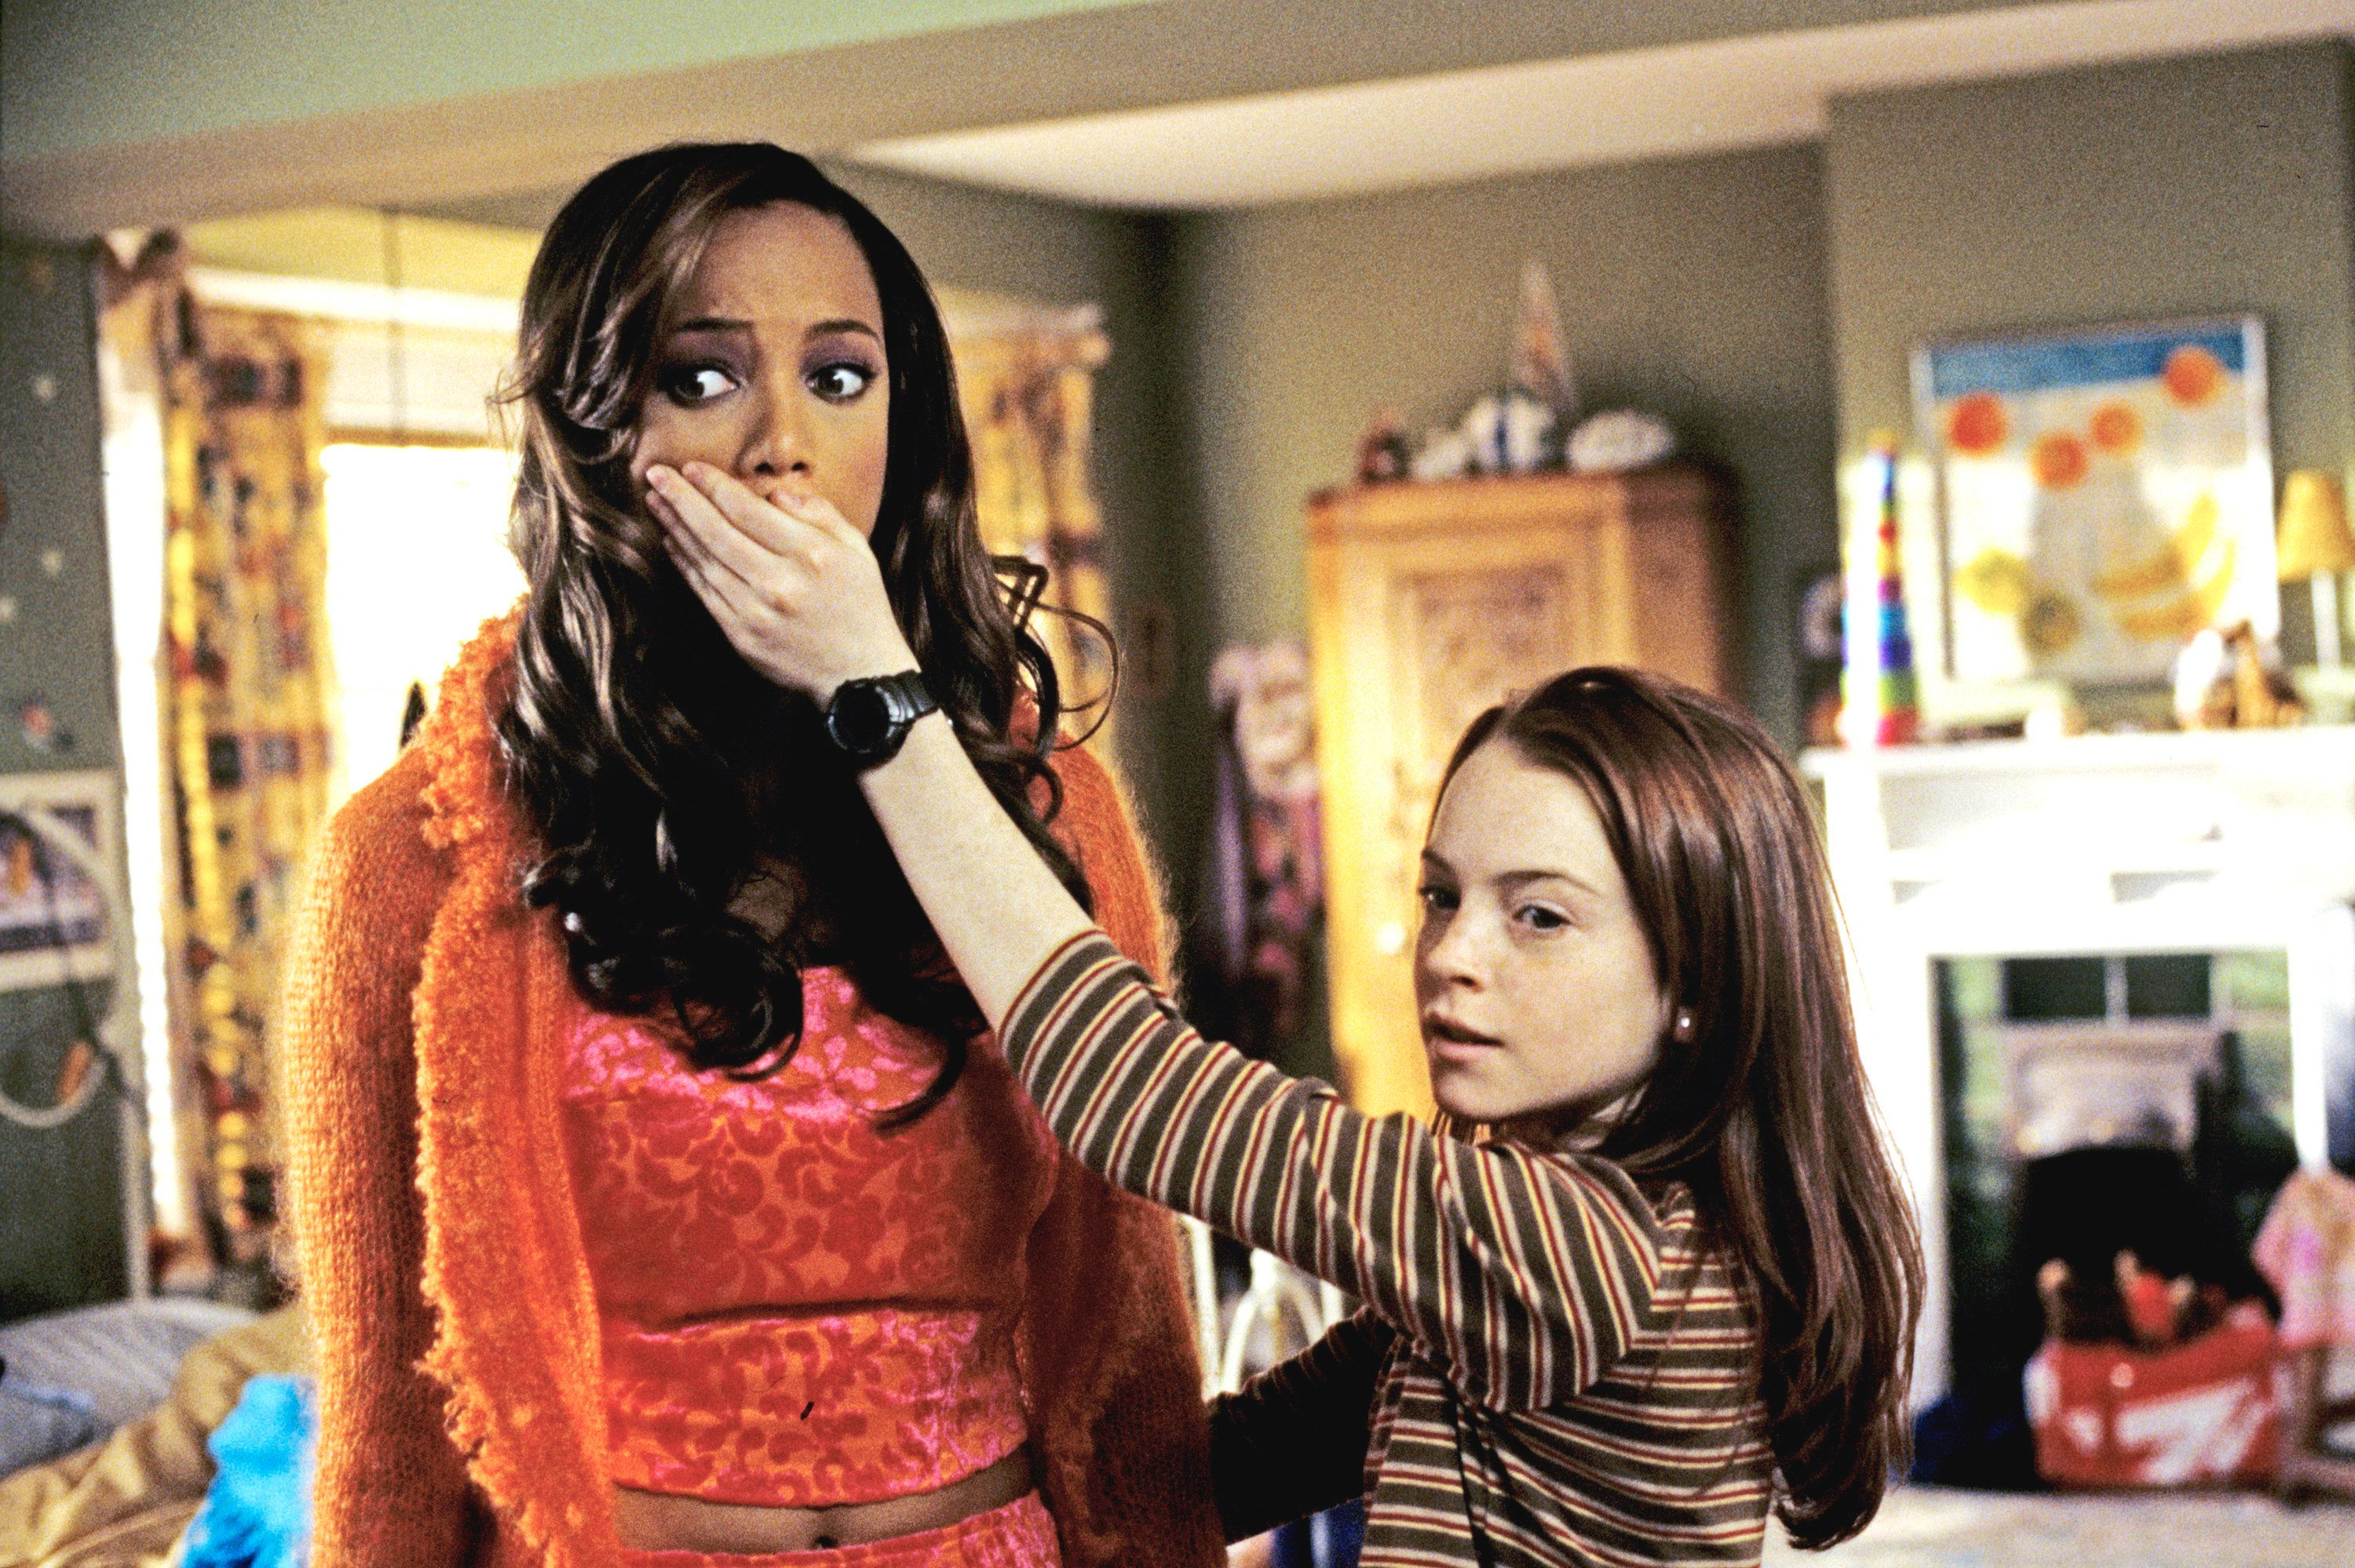 CANADA - MARCH 05:  ABC MOVIE FOR TV - 'Life-Size' - 3/5/00, Casey Stuart (Lindsay Lohan, right) accidentally brings her Eve doll (played by Tyra Banks) to life as the Perfect Woman while trying to cast a spell to resurrect her mother.,  (Photo by ABC Photo Archives/ABC via Getty Images)